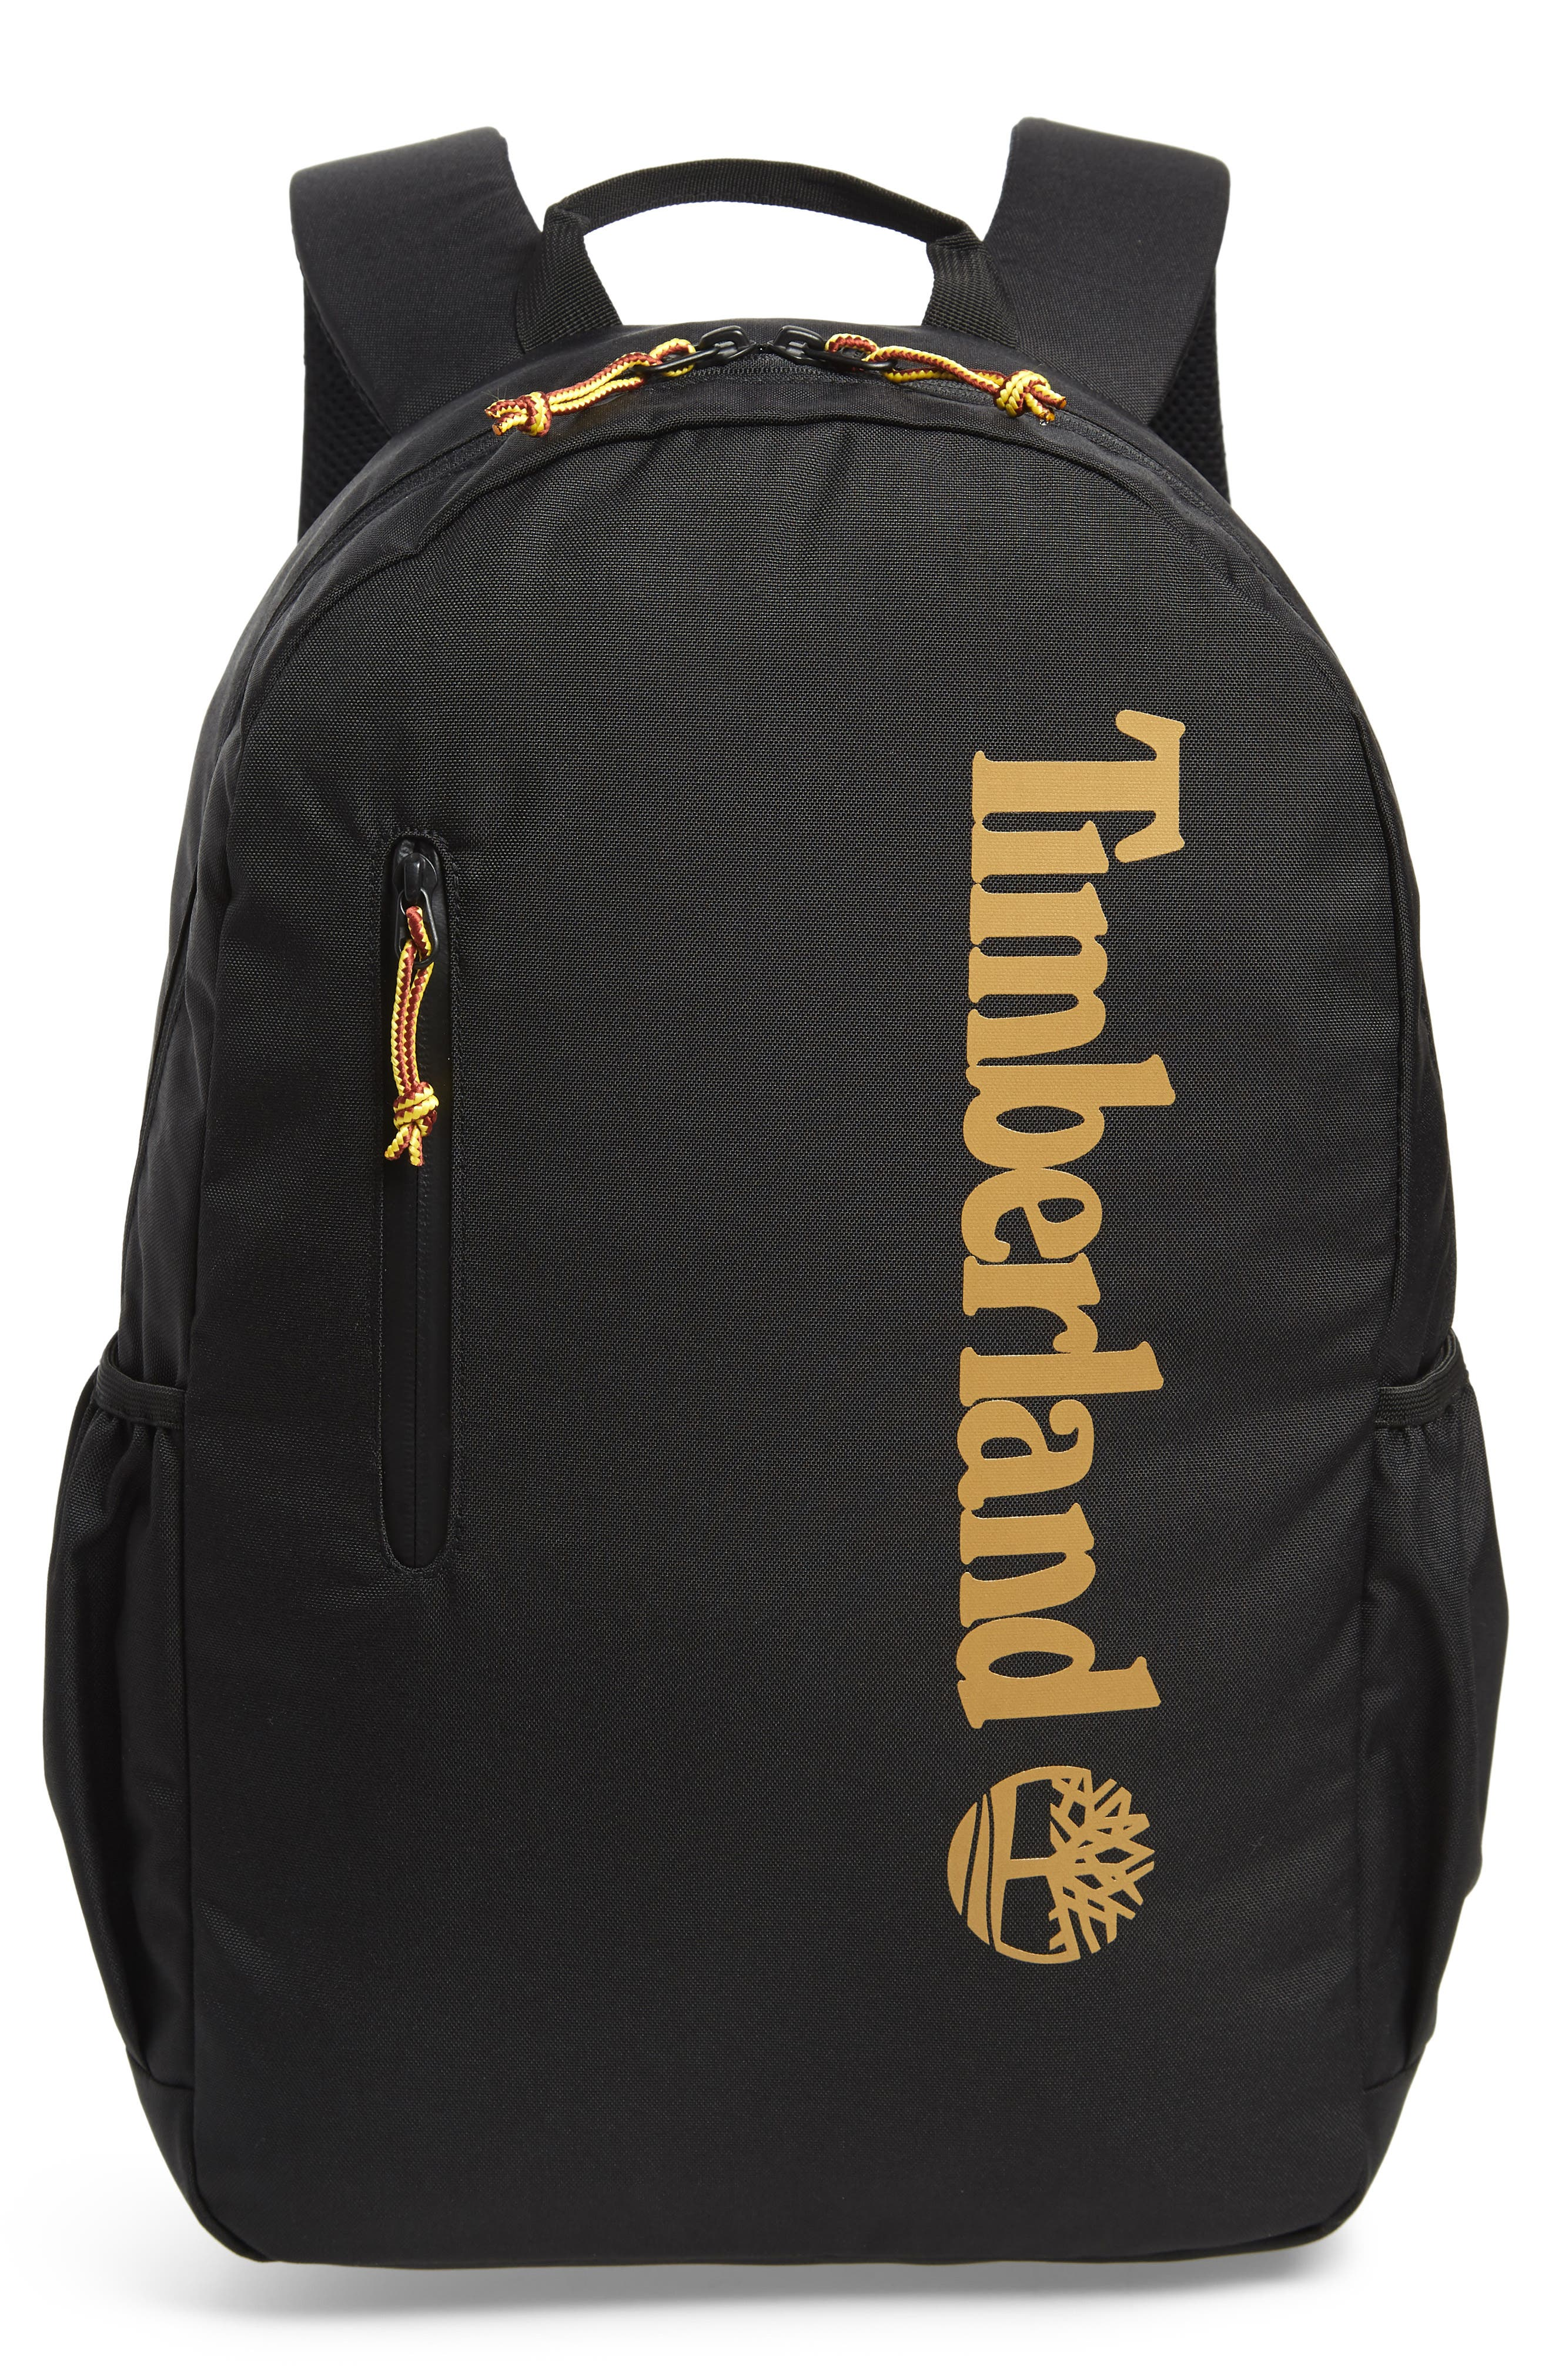 Linear Logo Water Resistant Backpack,                             Main thumbnail 1, color,                             BLACK W/ WHEAT LOGO